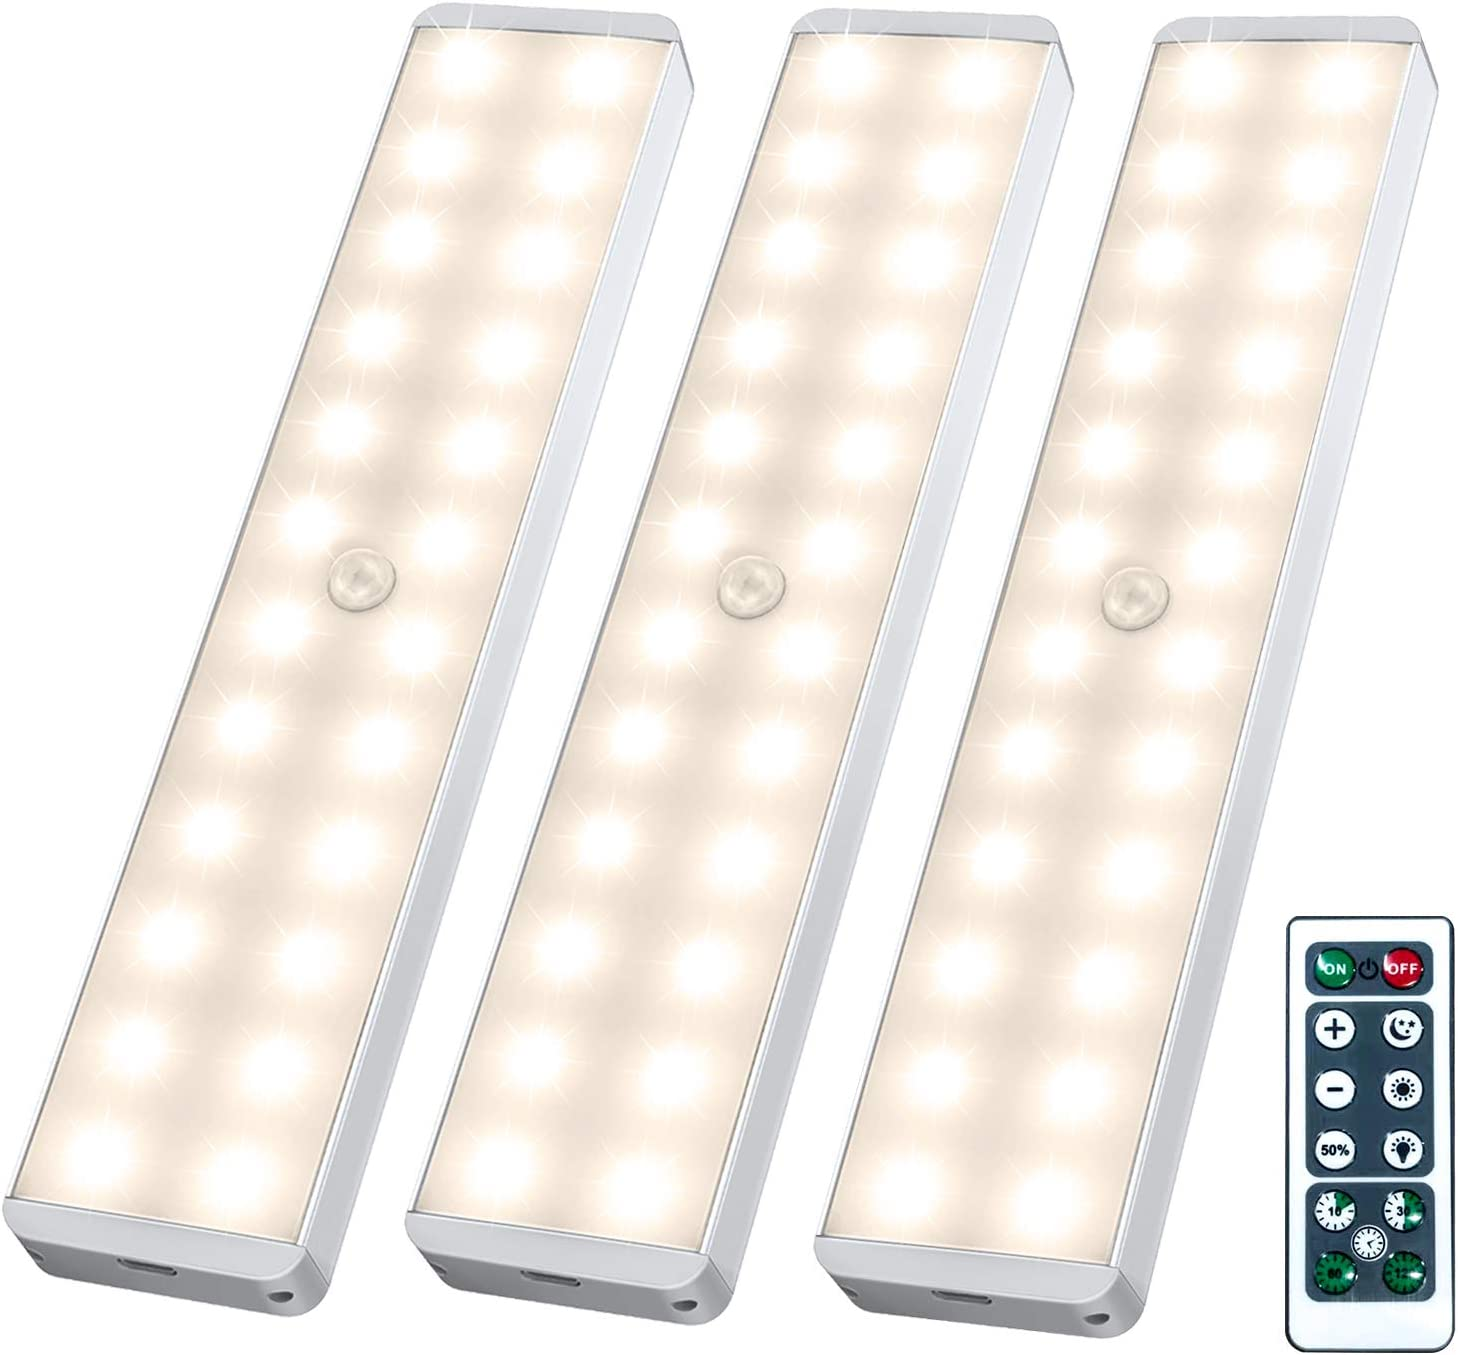 Litbiz [24 LED] Homelife Motion Sensor LED with Remote Control: Best Overall